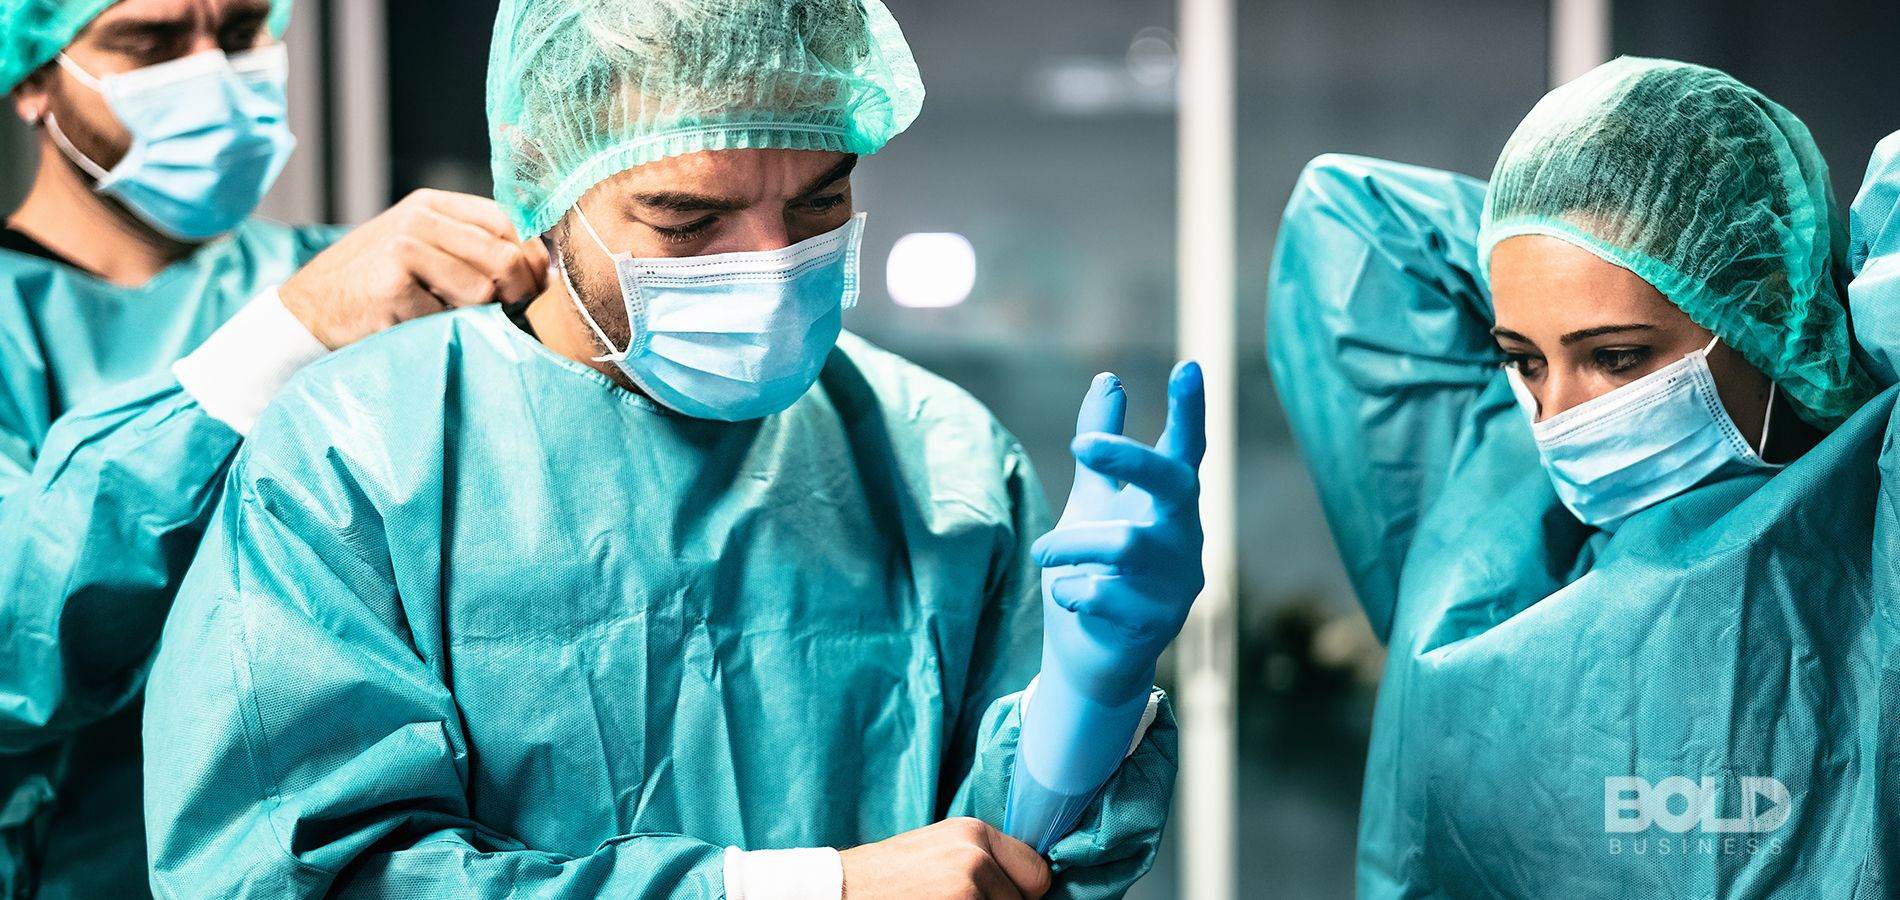 Surgeons in an operating room getting ready to dig in